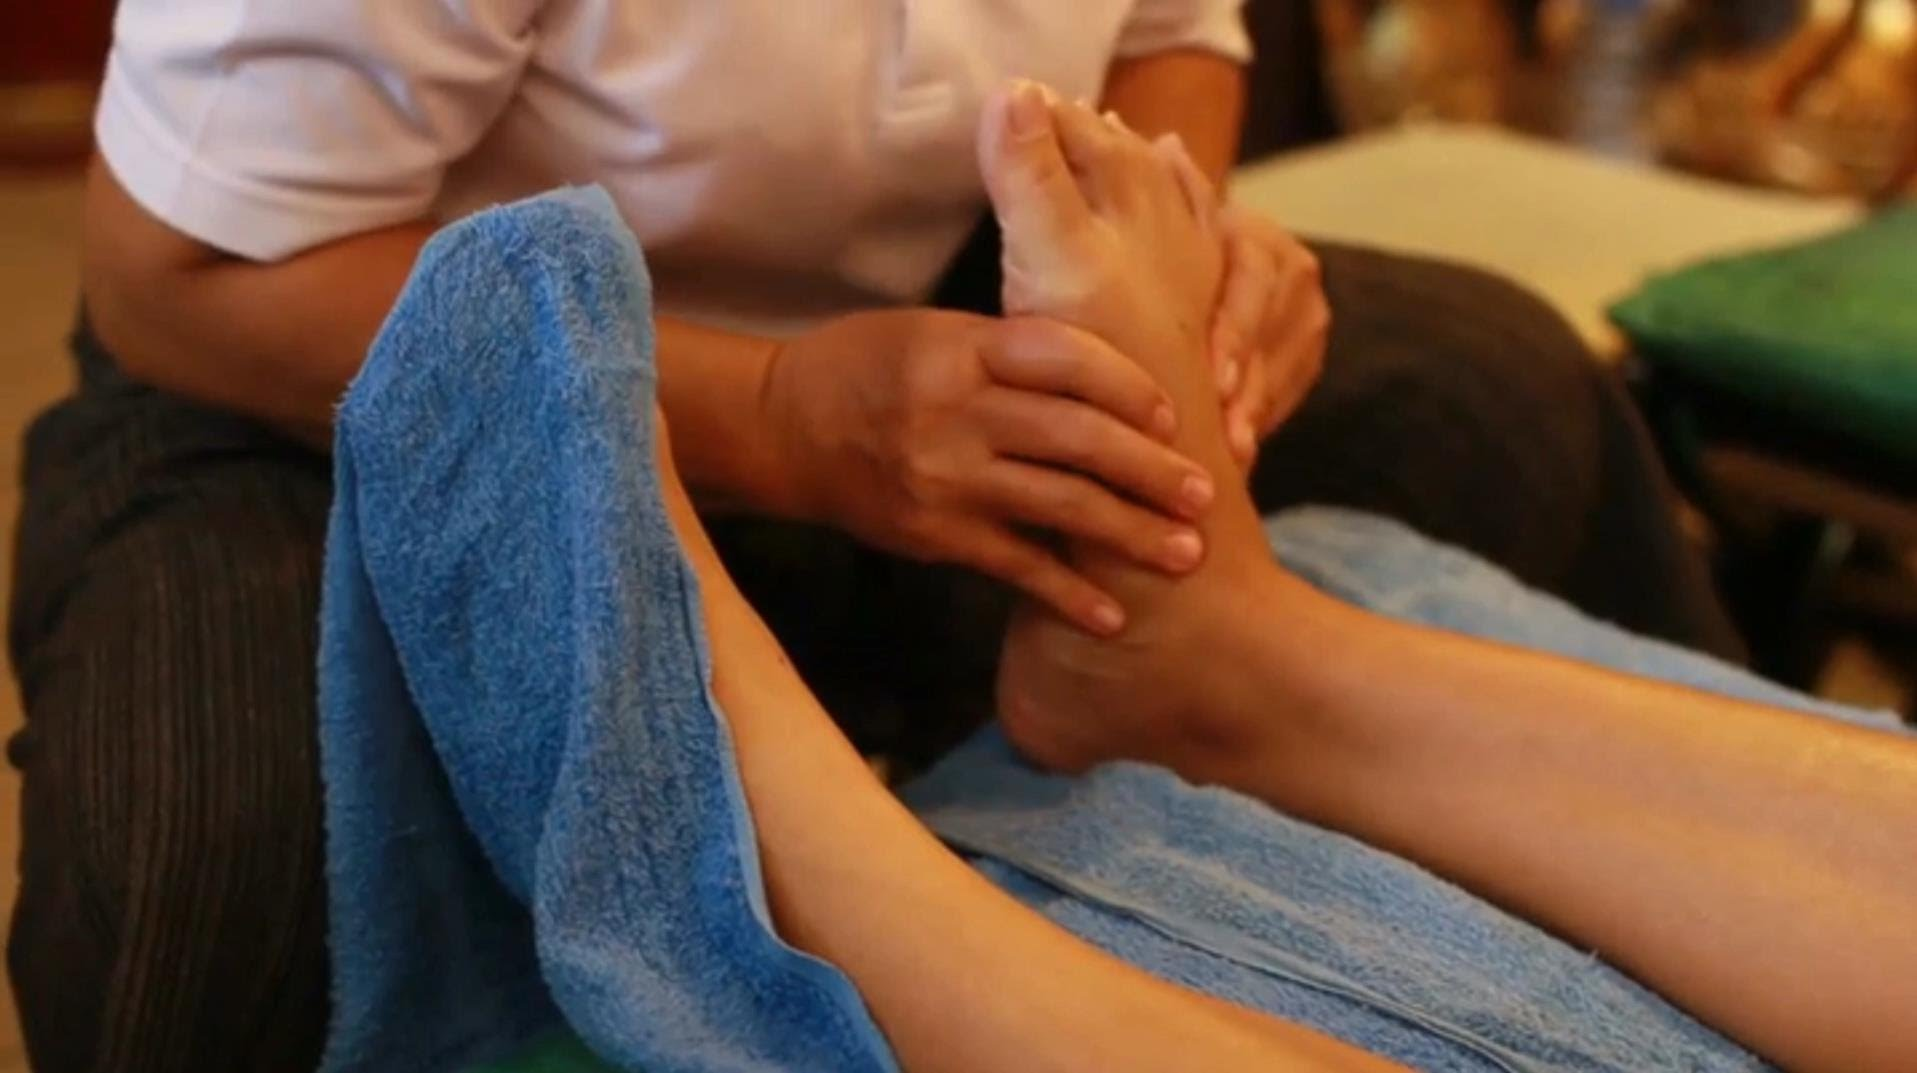 Strong Pressure Foot Massage Therapy, How to Massage Feet Techniques Part 2